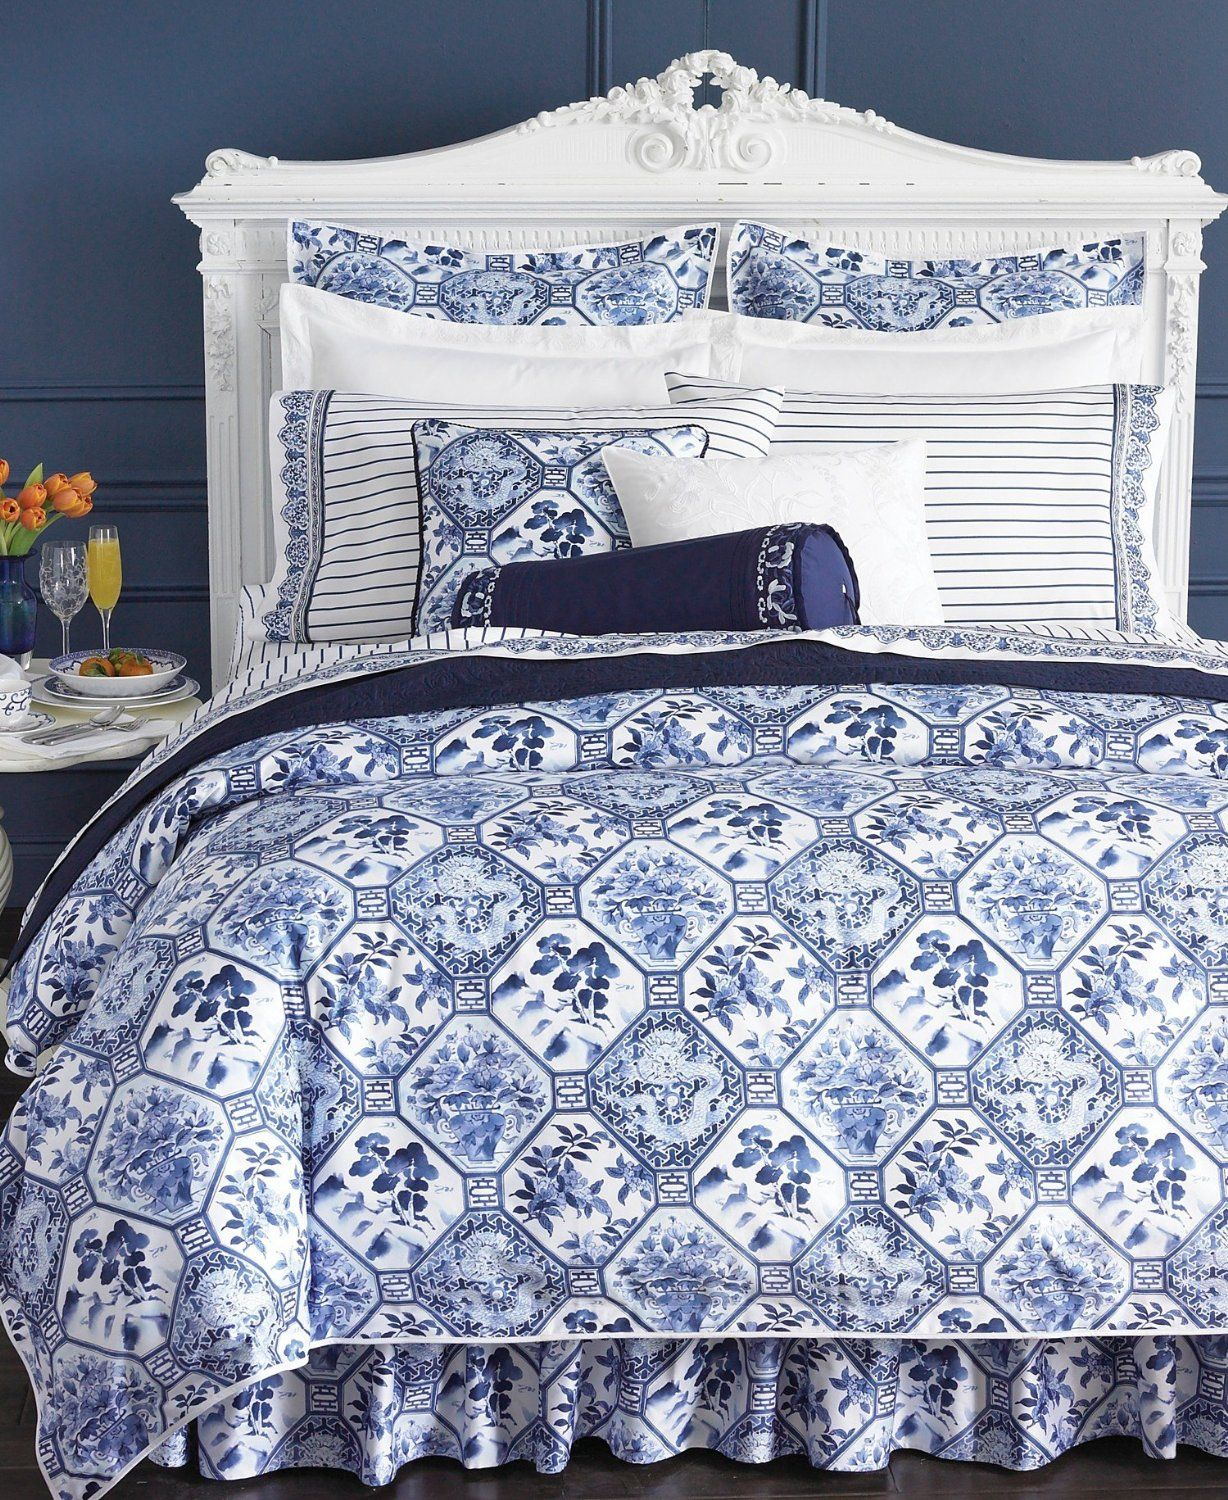 Blue and white toile bedding - Http Www Frenchcountryhomedecor Com Ralph Lauren Tamarind Porcelain Blue Comforter Set Queen French Country Home Decor Pinterest Ralph Lauren Blue